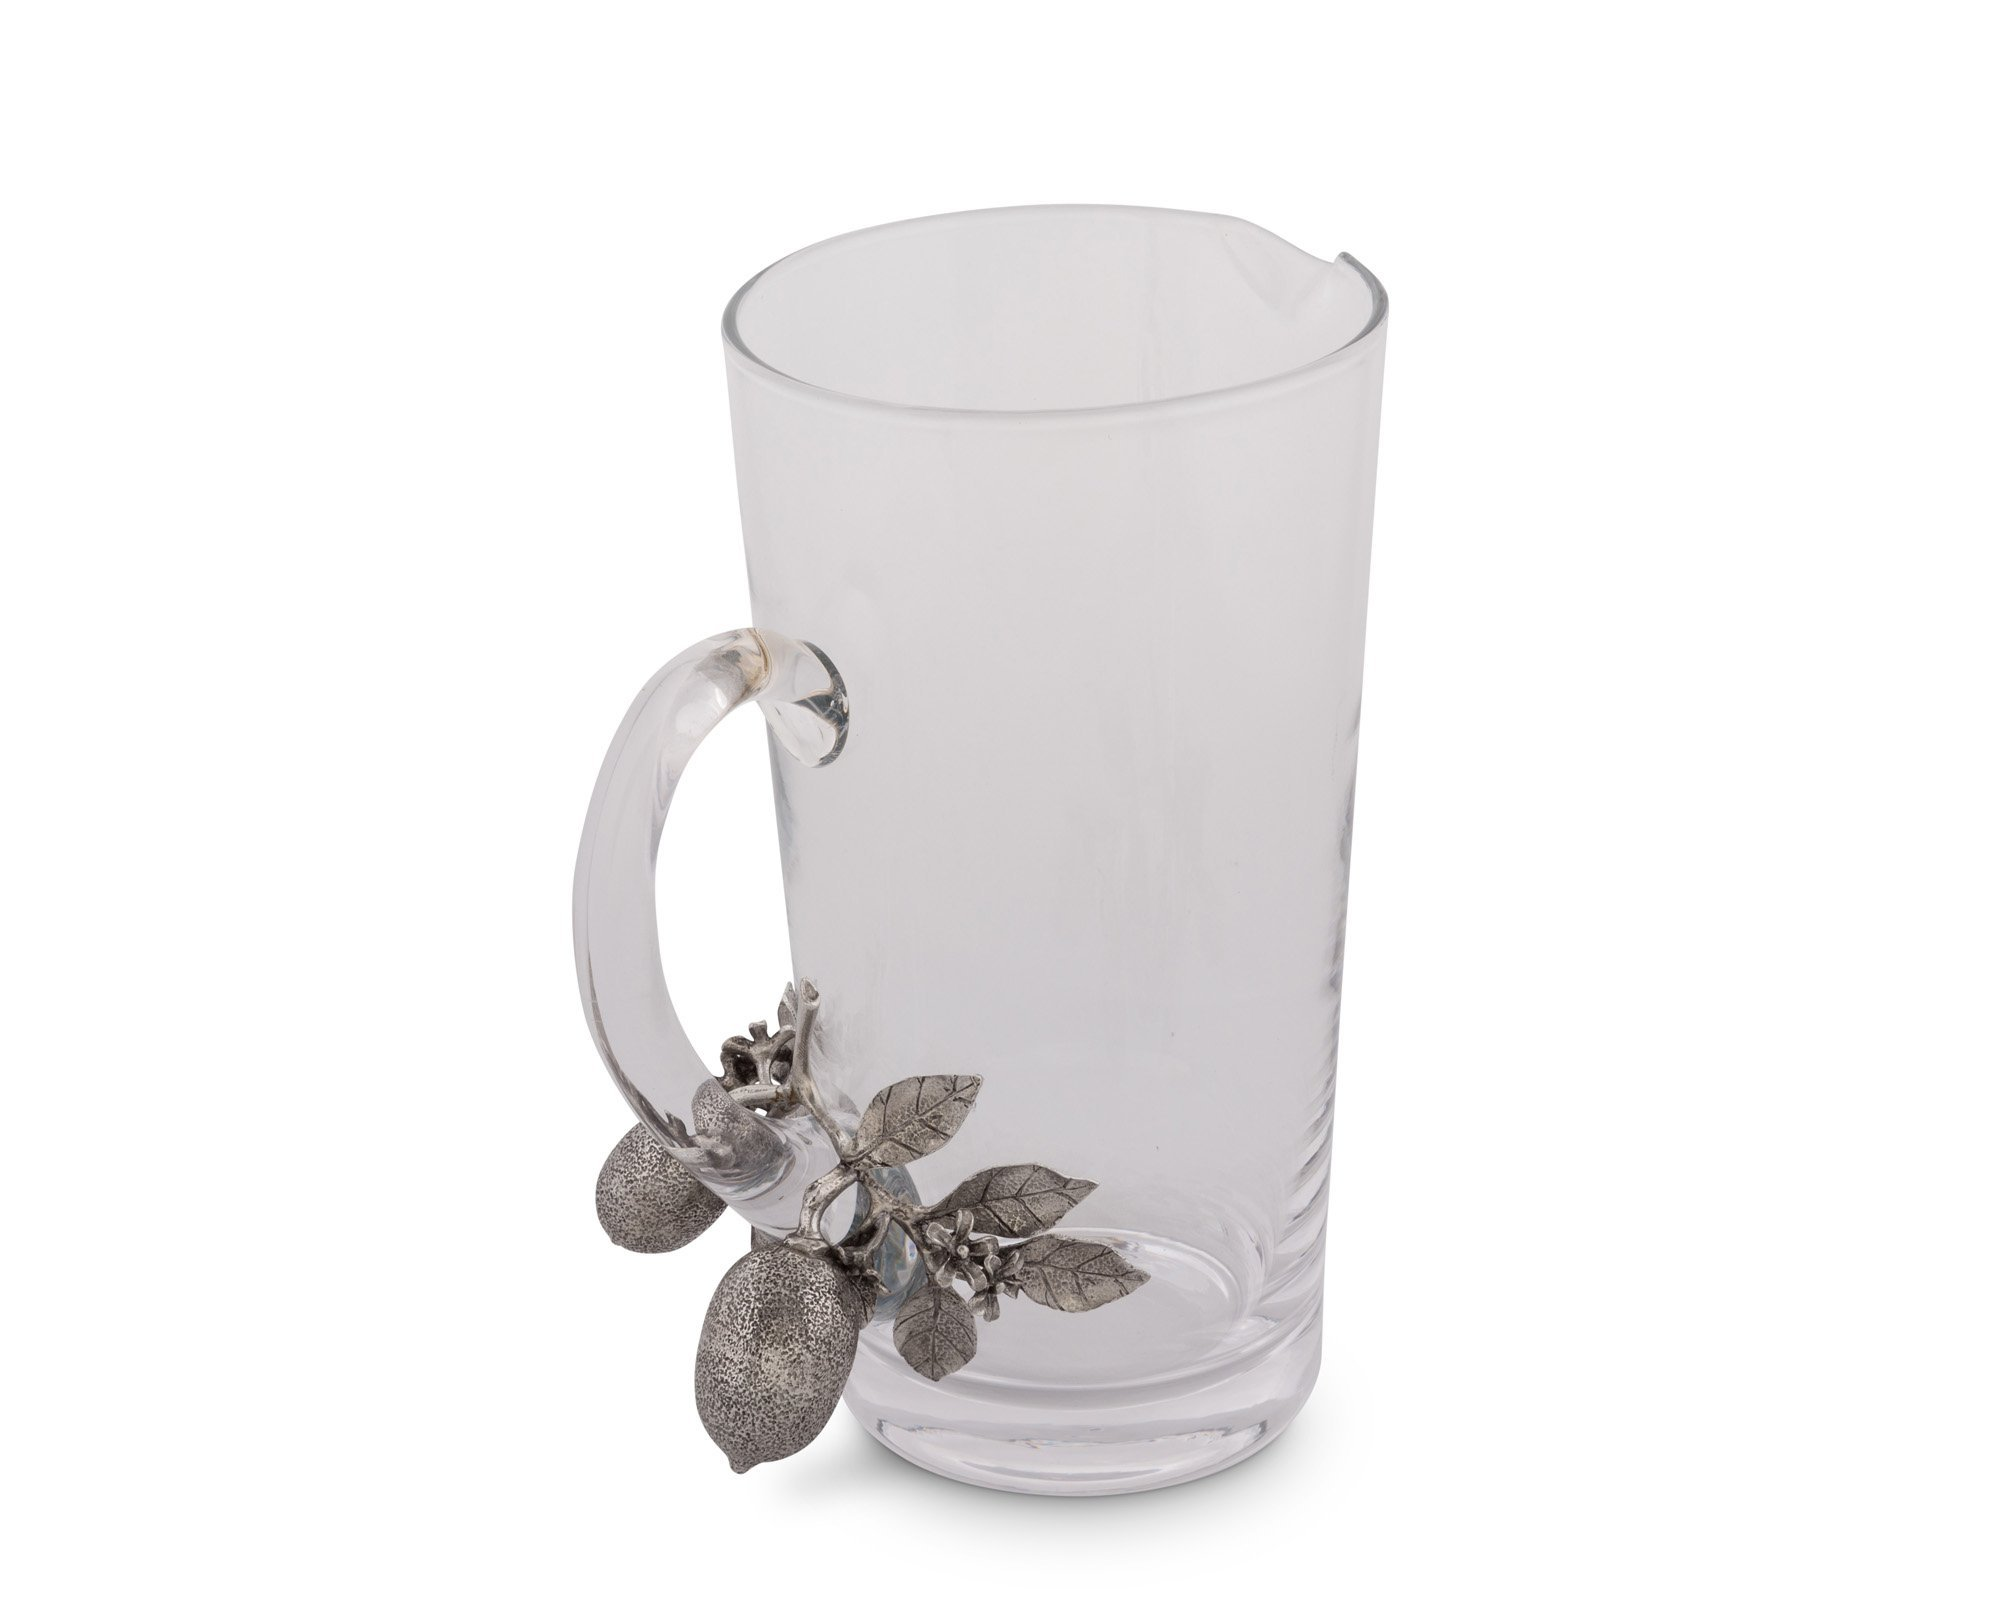 Vagabond House Glass and Pewter Lemon Bouquet Pitcher 9.5'' Tall by Vagabond House (Image #2)